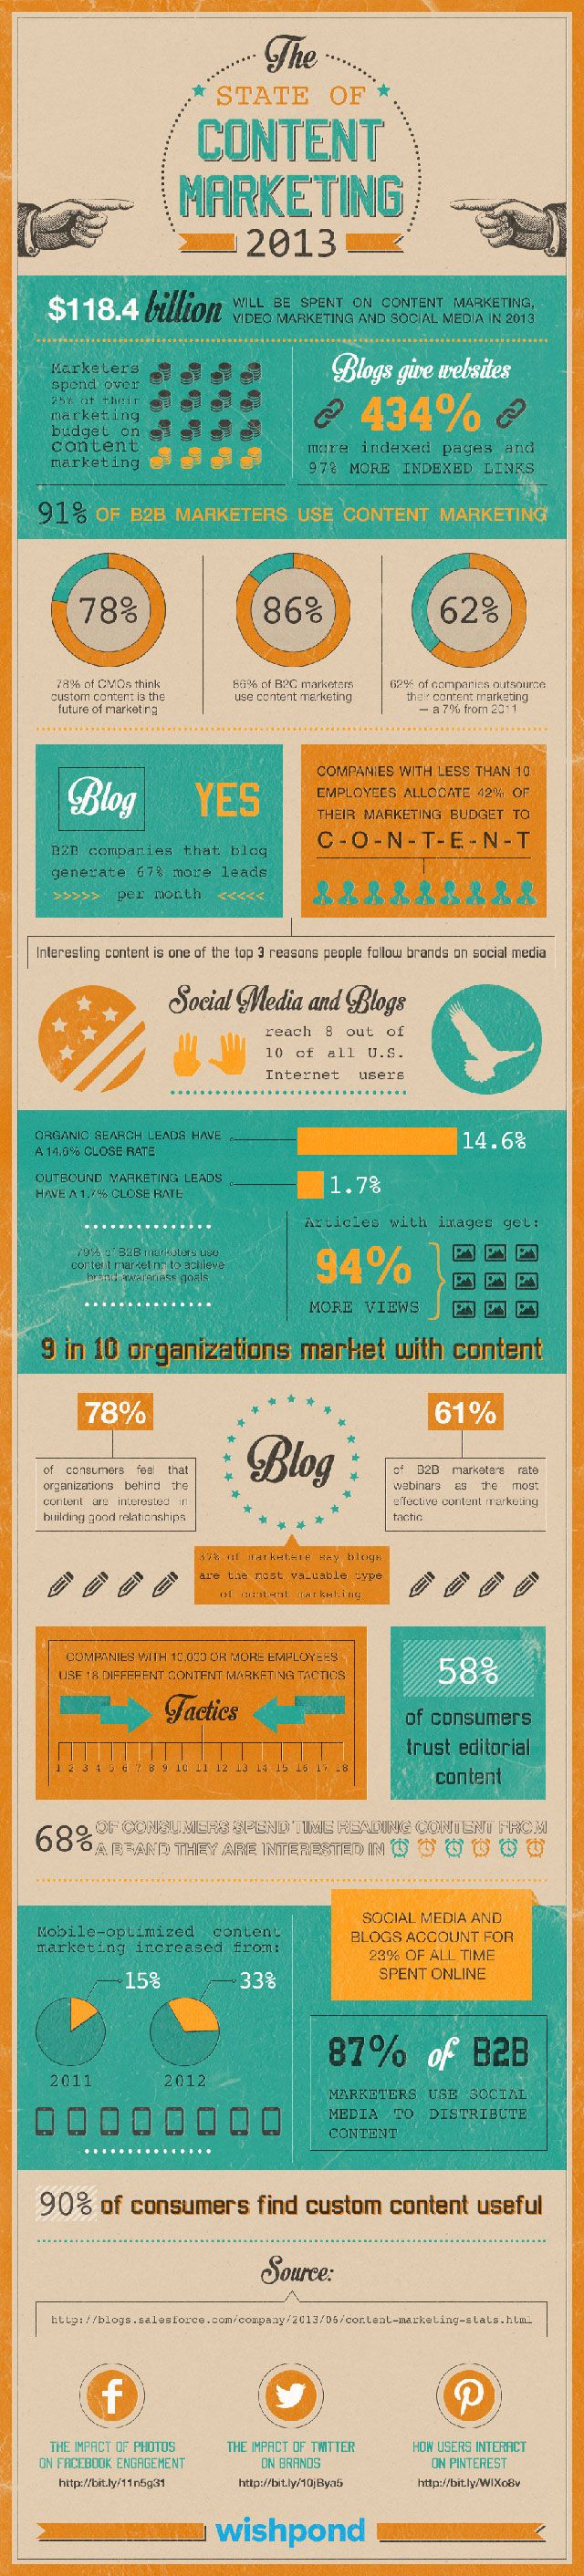 Infographic of the Day: The State of Content Marketing 2013